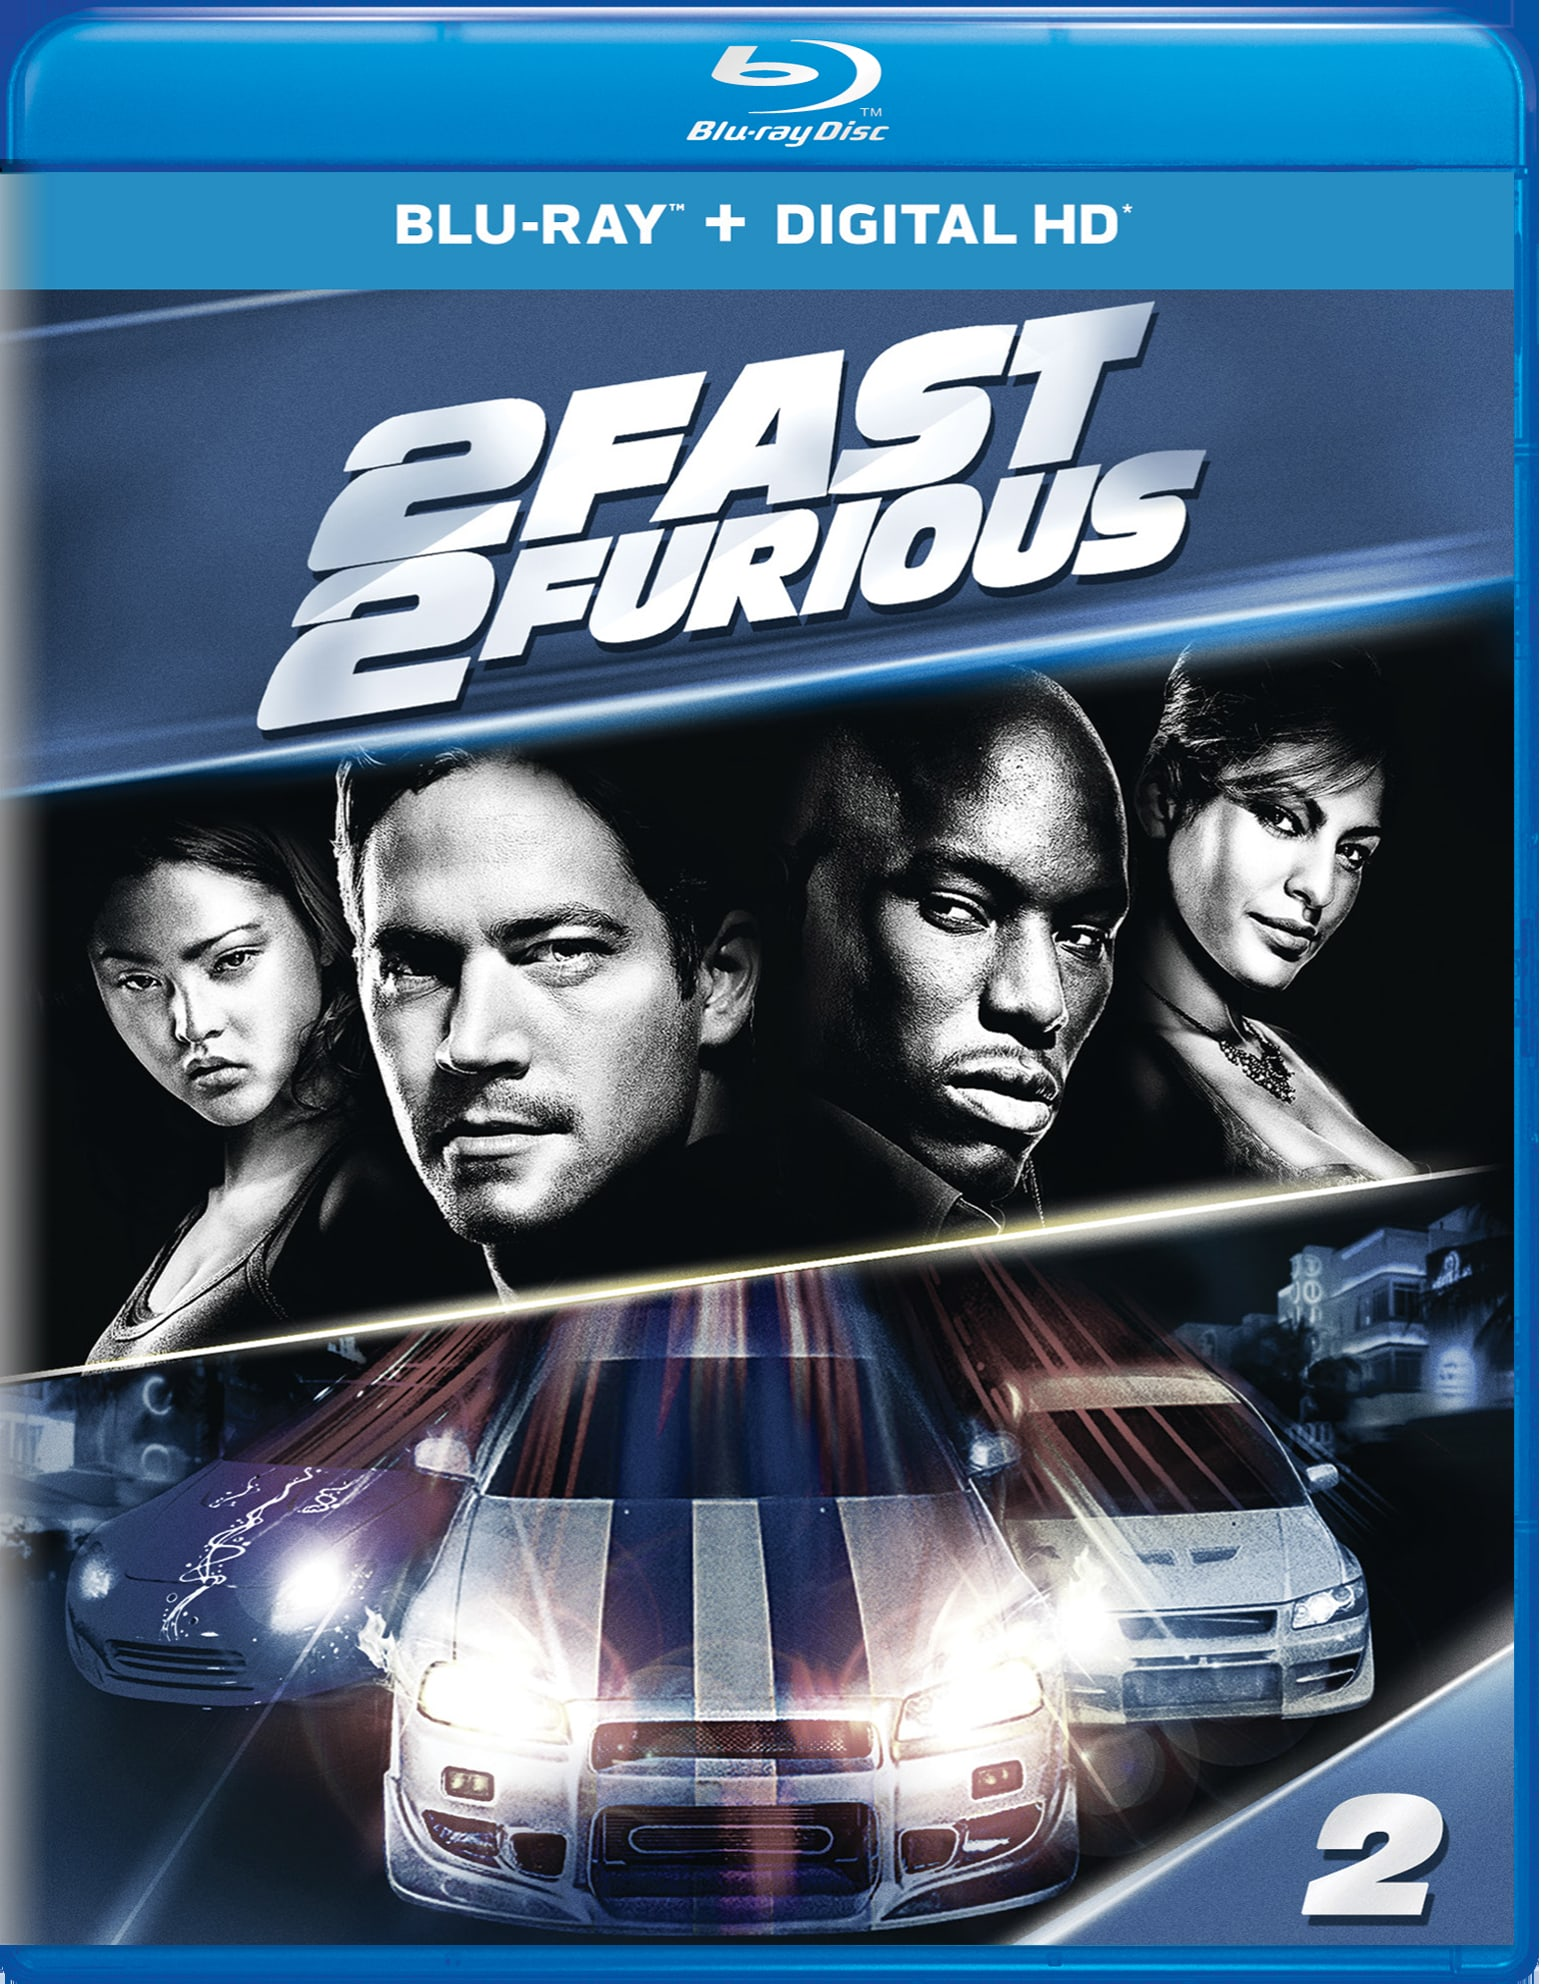 2 Fast 2 Furious (Digital) [Blu-ray]